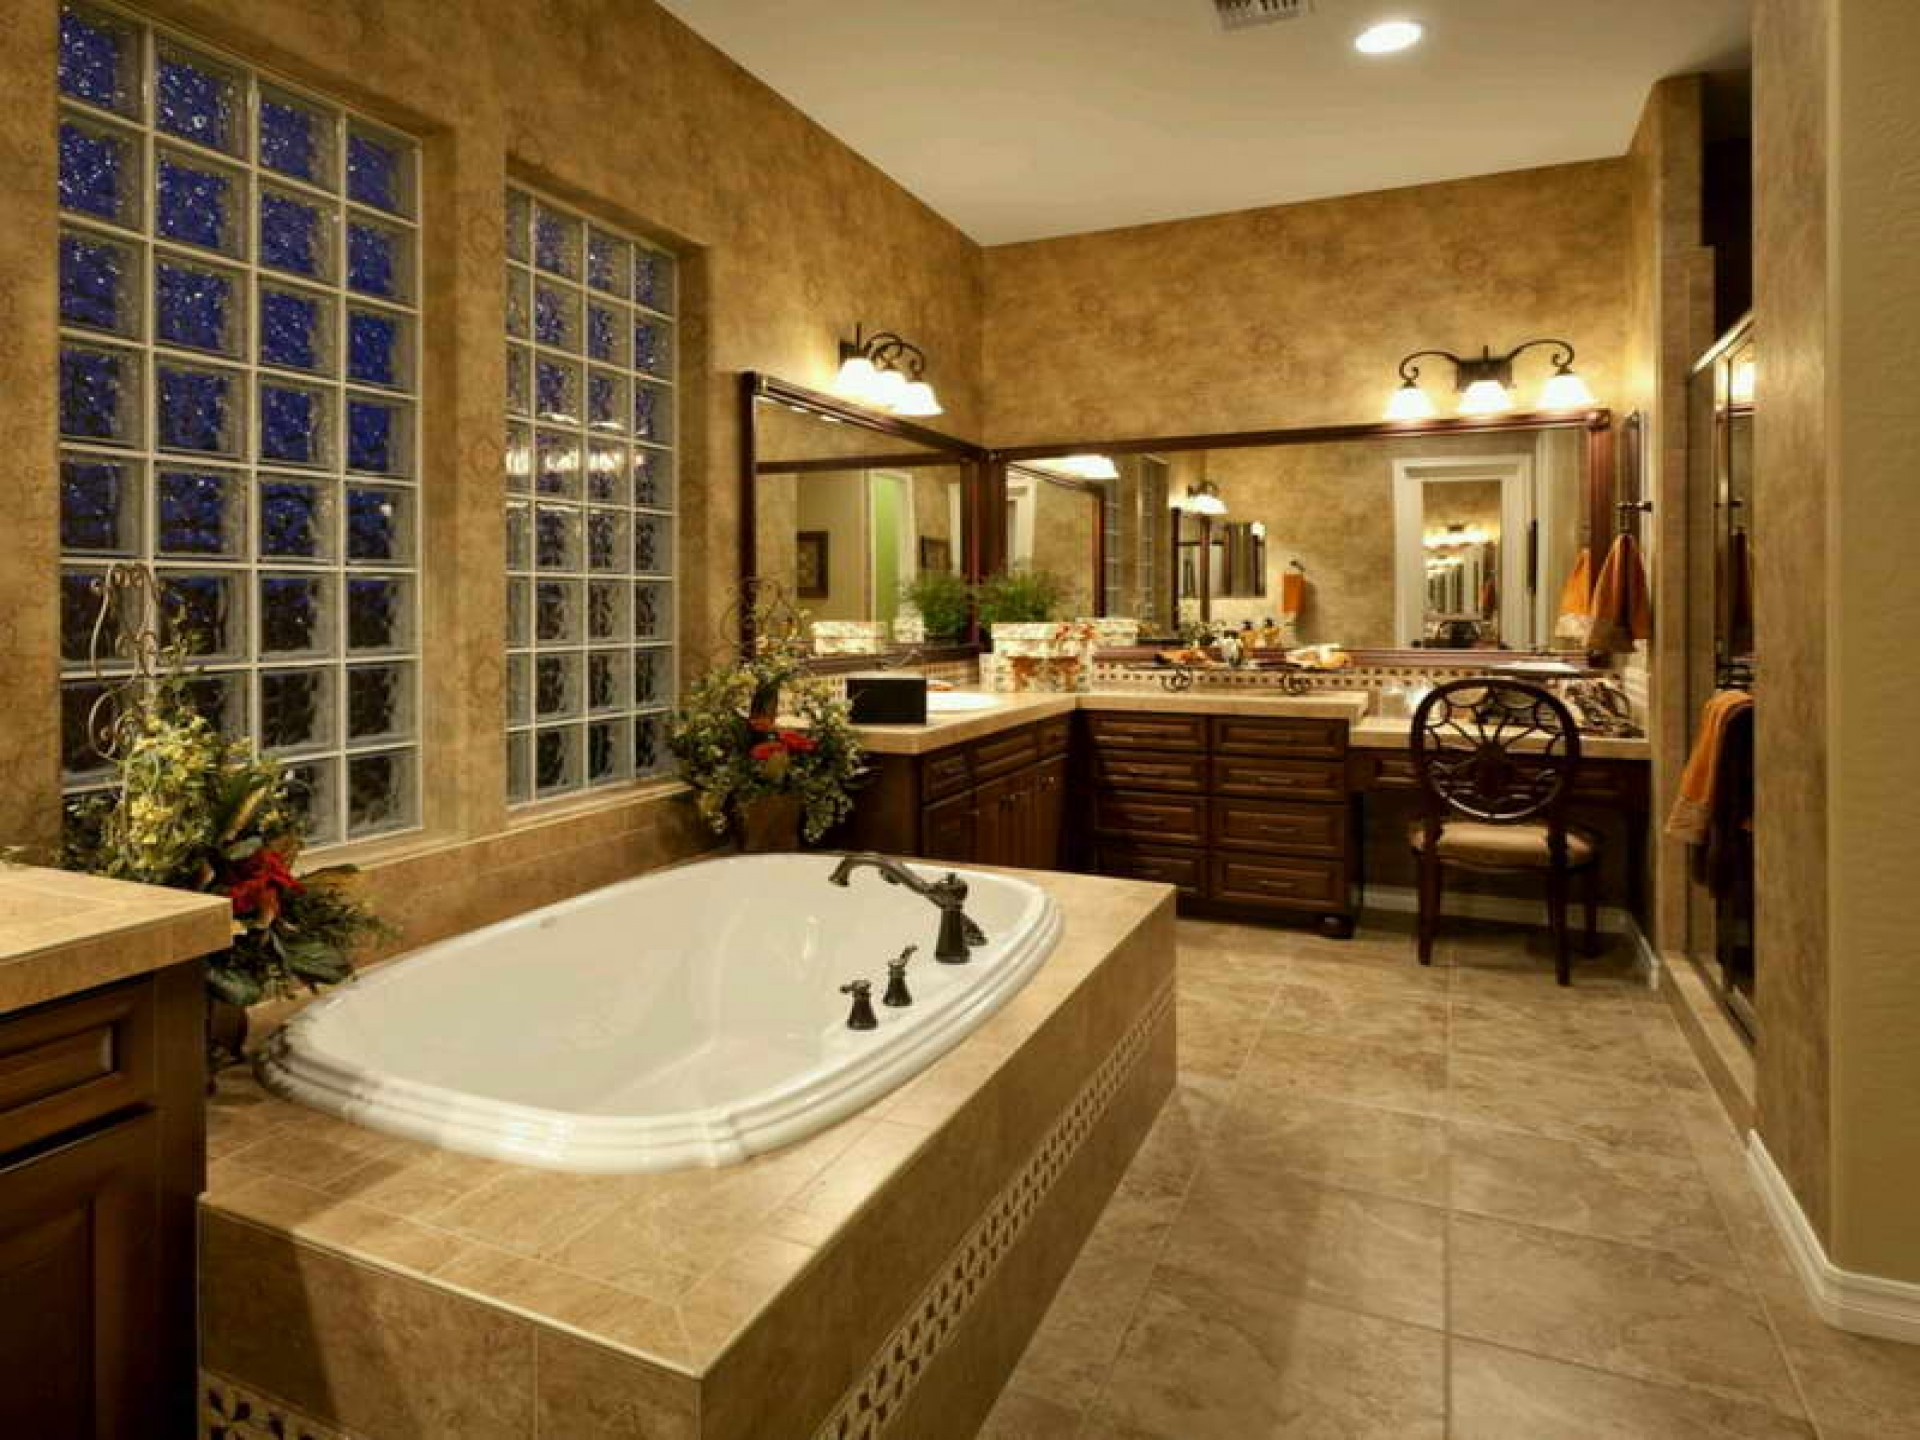 100 amazing bathroom ideas you 39 ll fall in love with Most beautiful small bathrooms